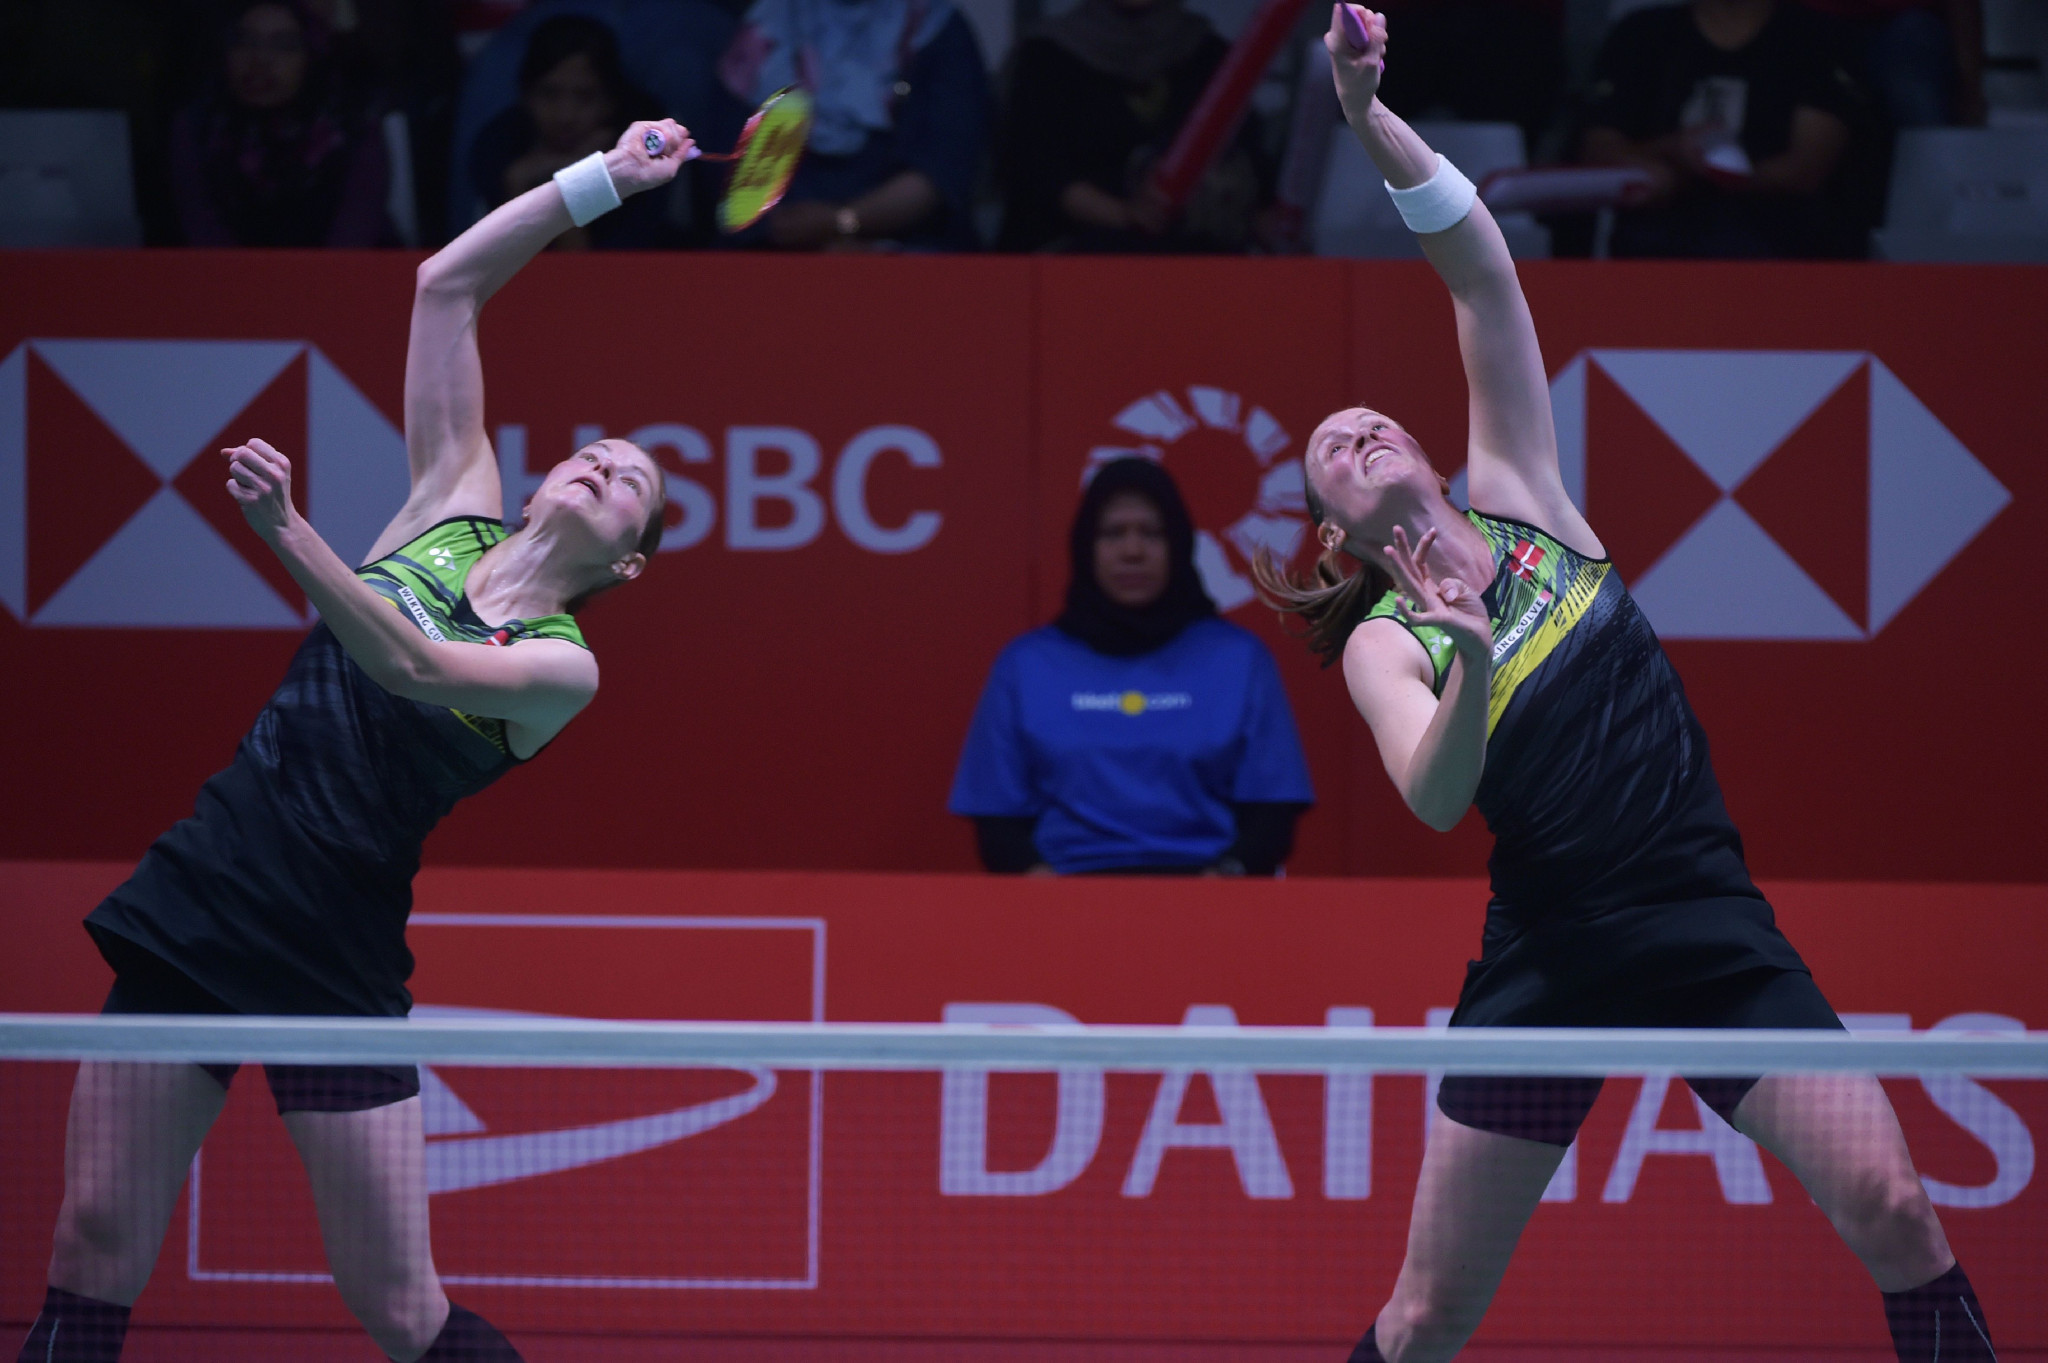 Denmark's Olympic silver medallists Kamilla Rytter Juhl, right, and Christinna Pedersen, left, won their opening match at the BWF India Open to live up to their favourites tag ©Getty Images